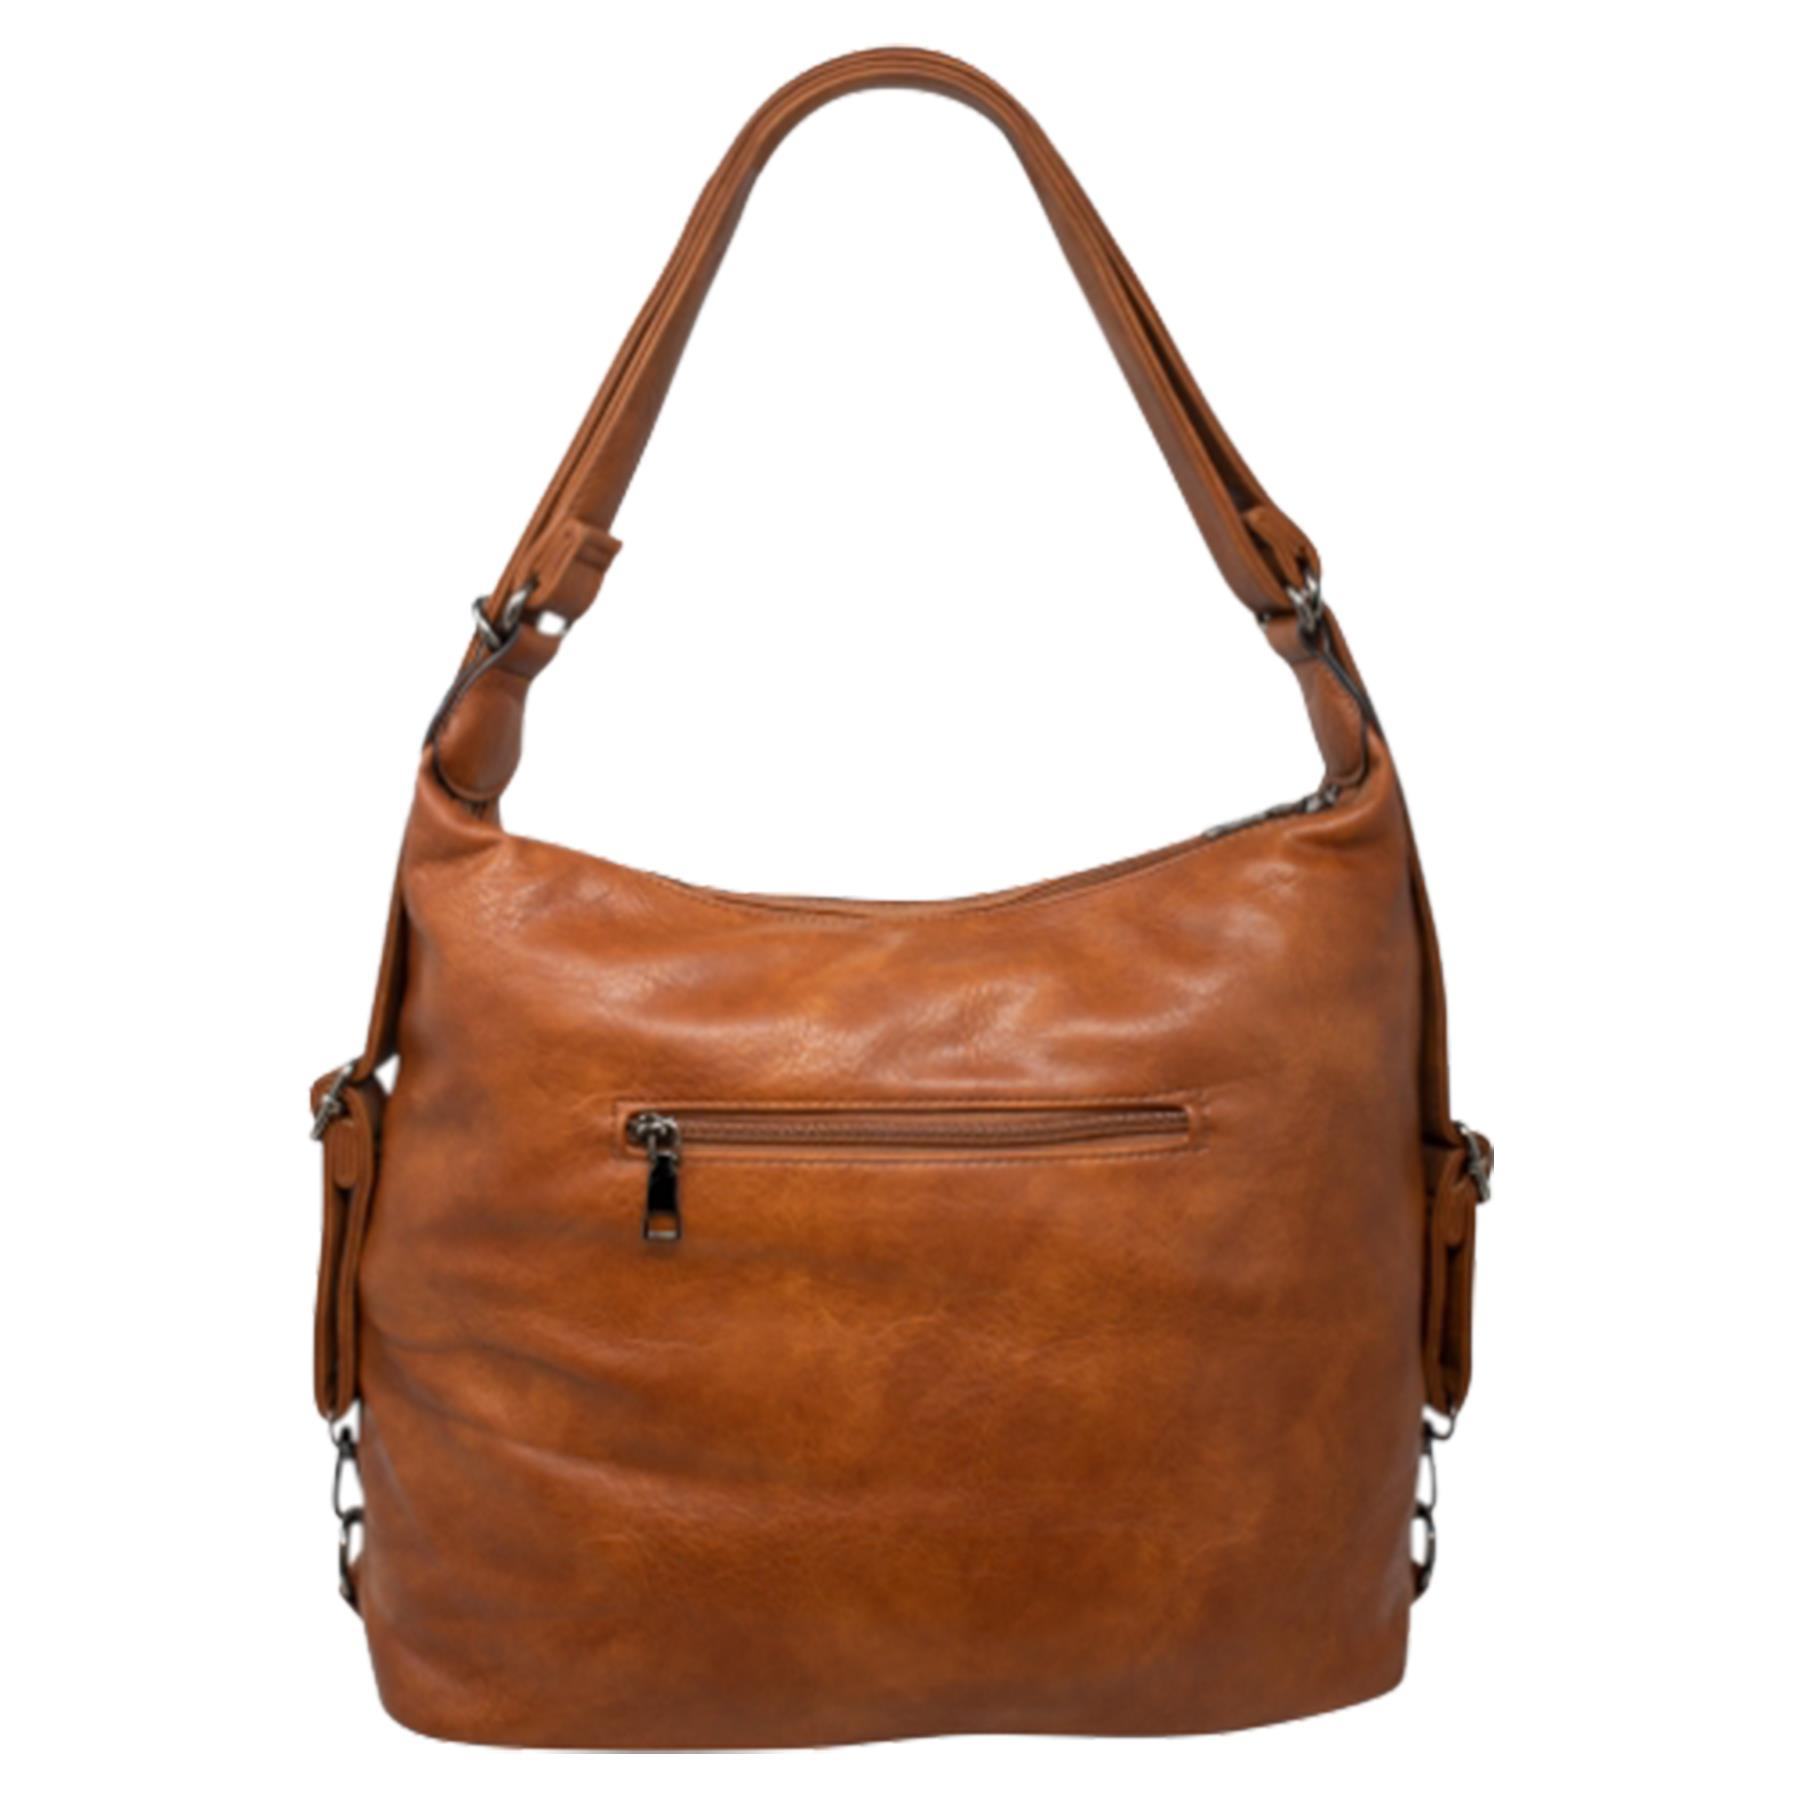 New-Women-s-Men-s-Faux-Leather-Multi-Purpose-Crossbody-Messenger-Bag thumbnail 8